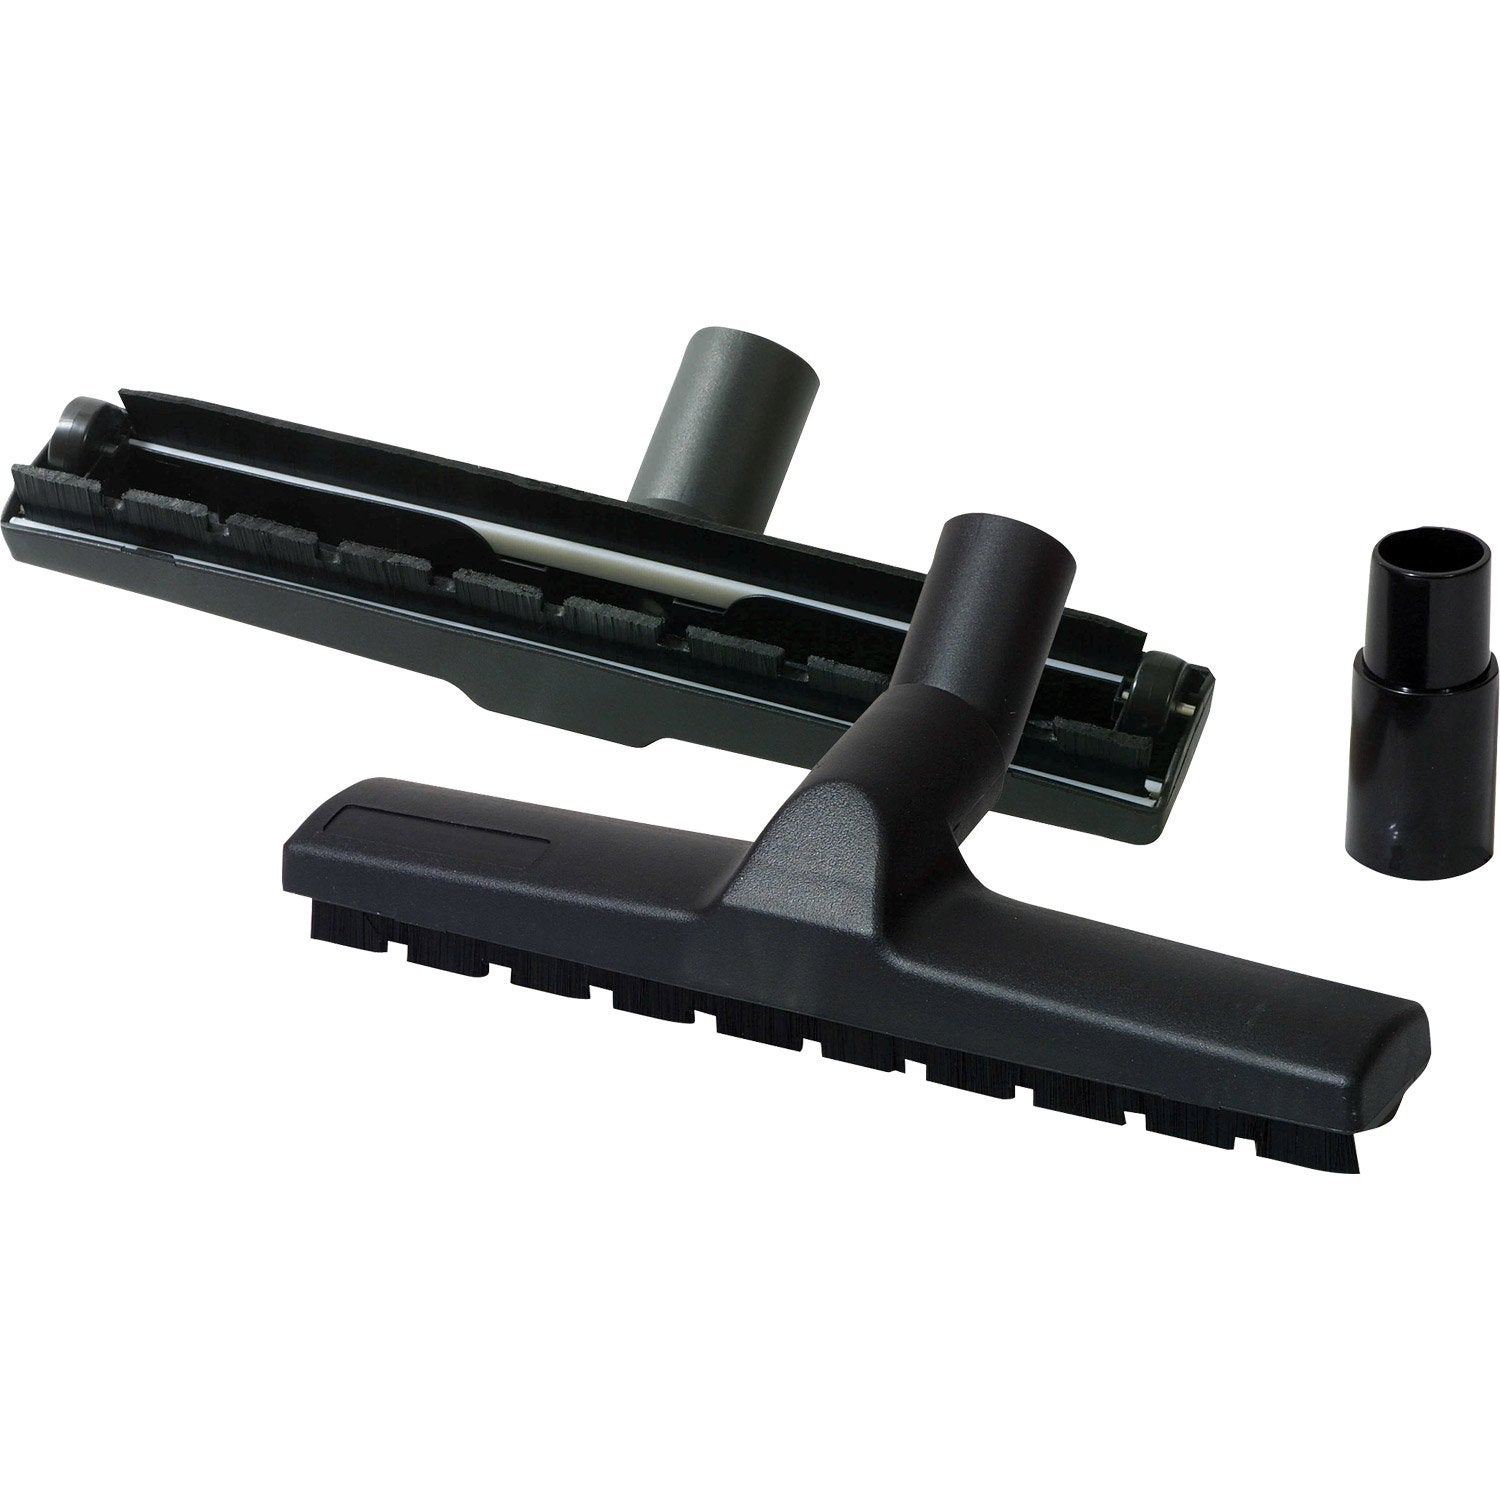 brosse sp ciale parquet standard dxbsl22 dexter leroy merlin. Black Bedroom Furniture Sets. Home Design Ideas